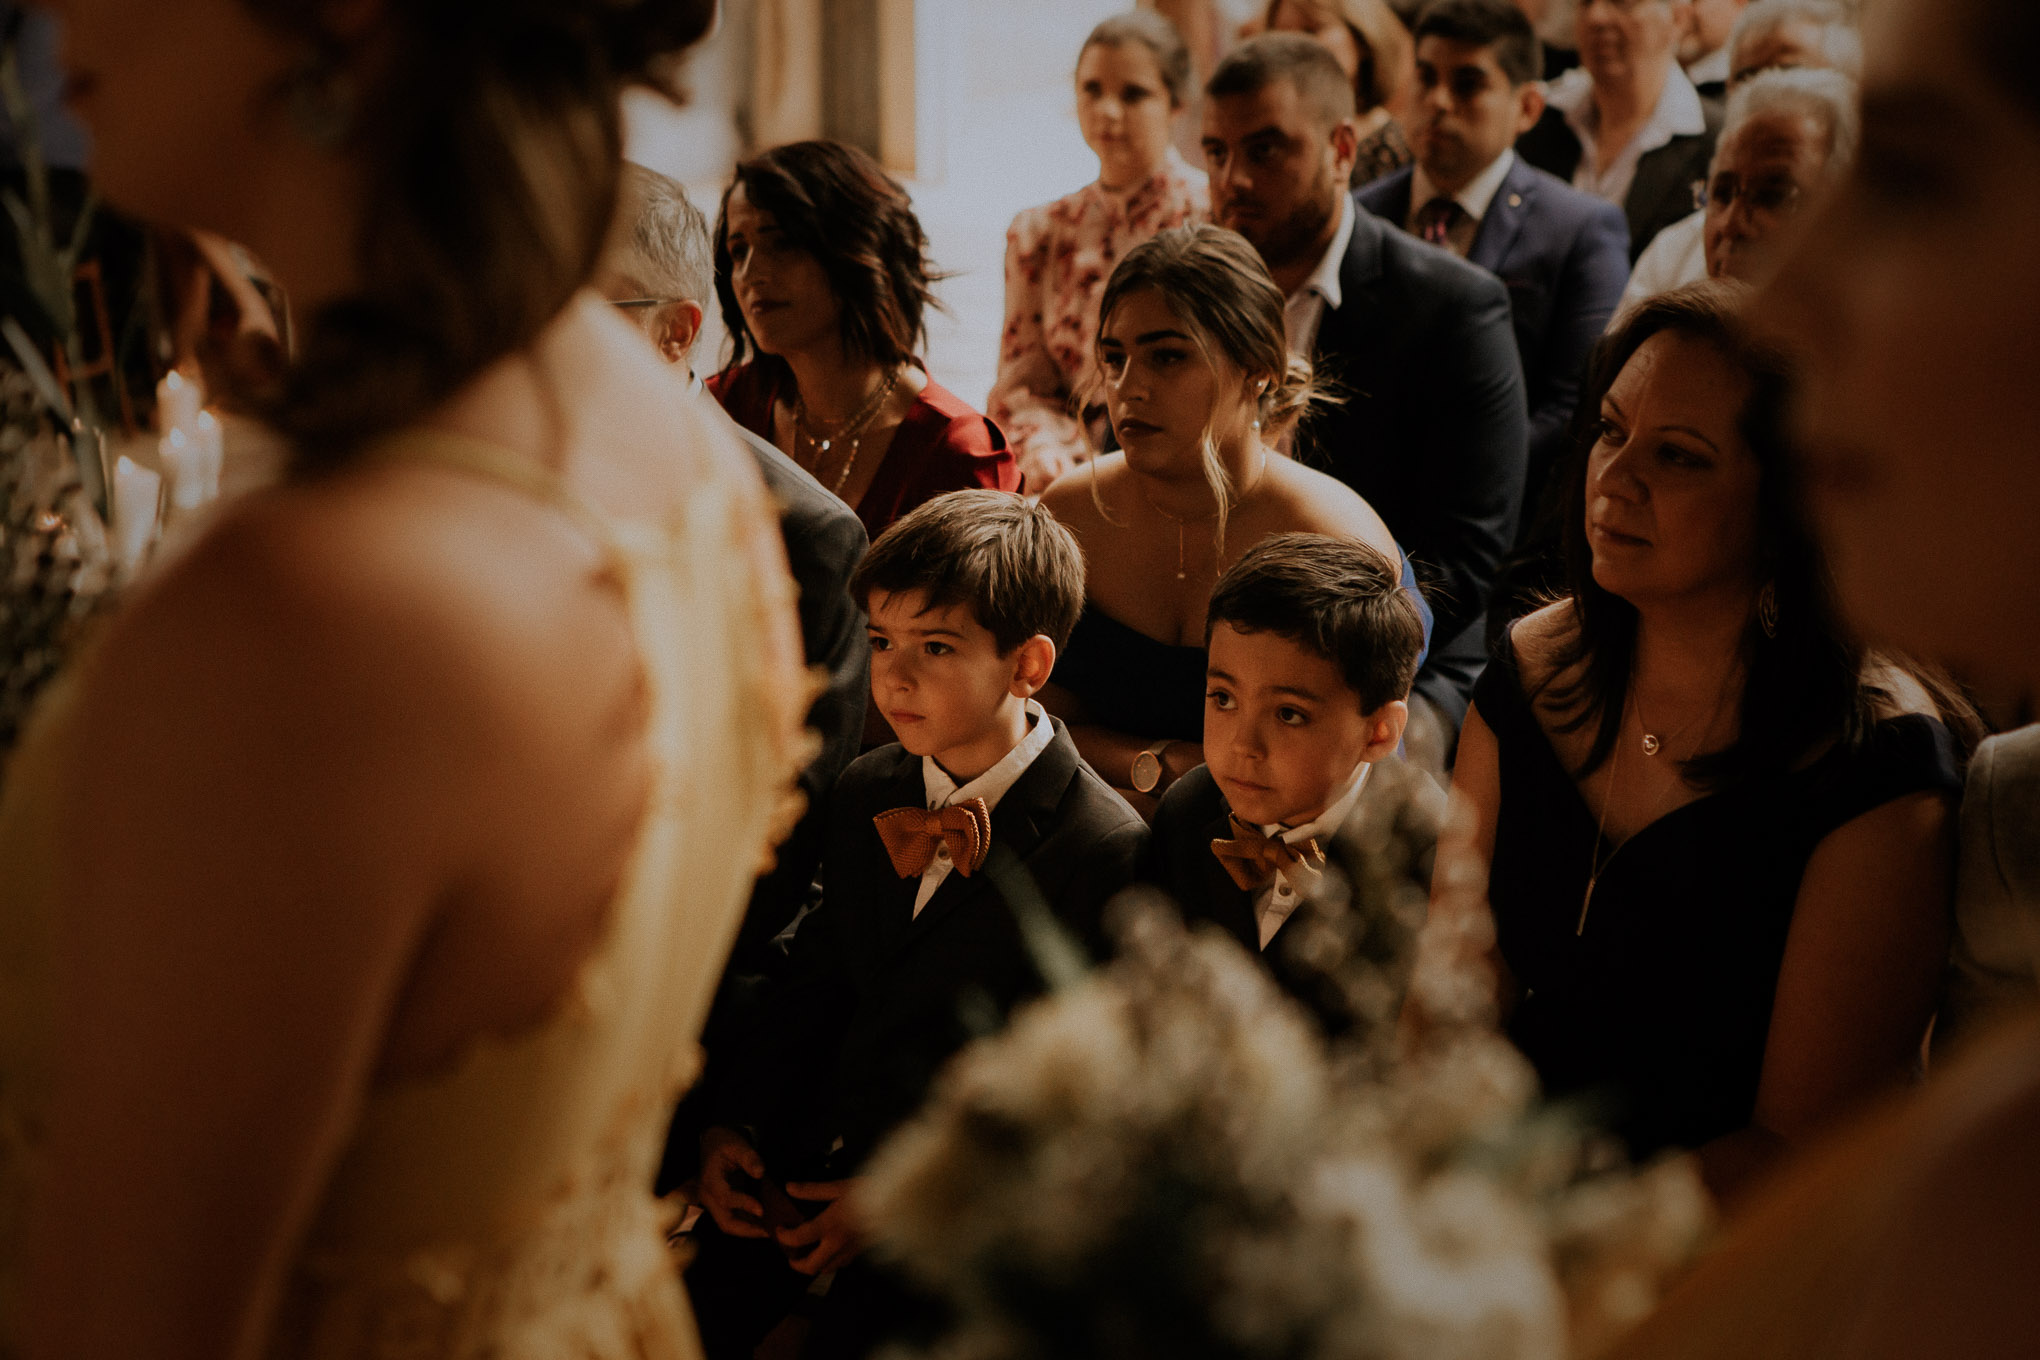 Emotional reactions during rustic wedding ceremony